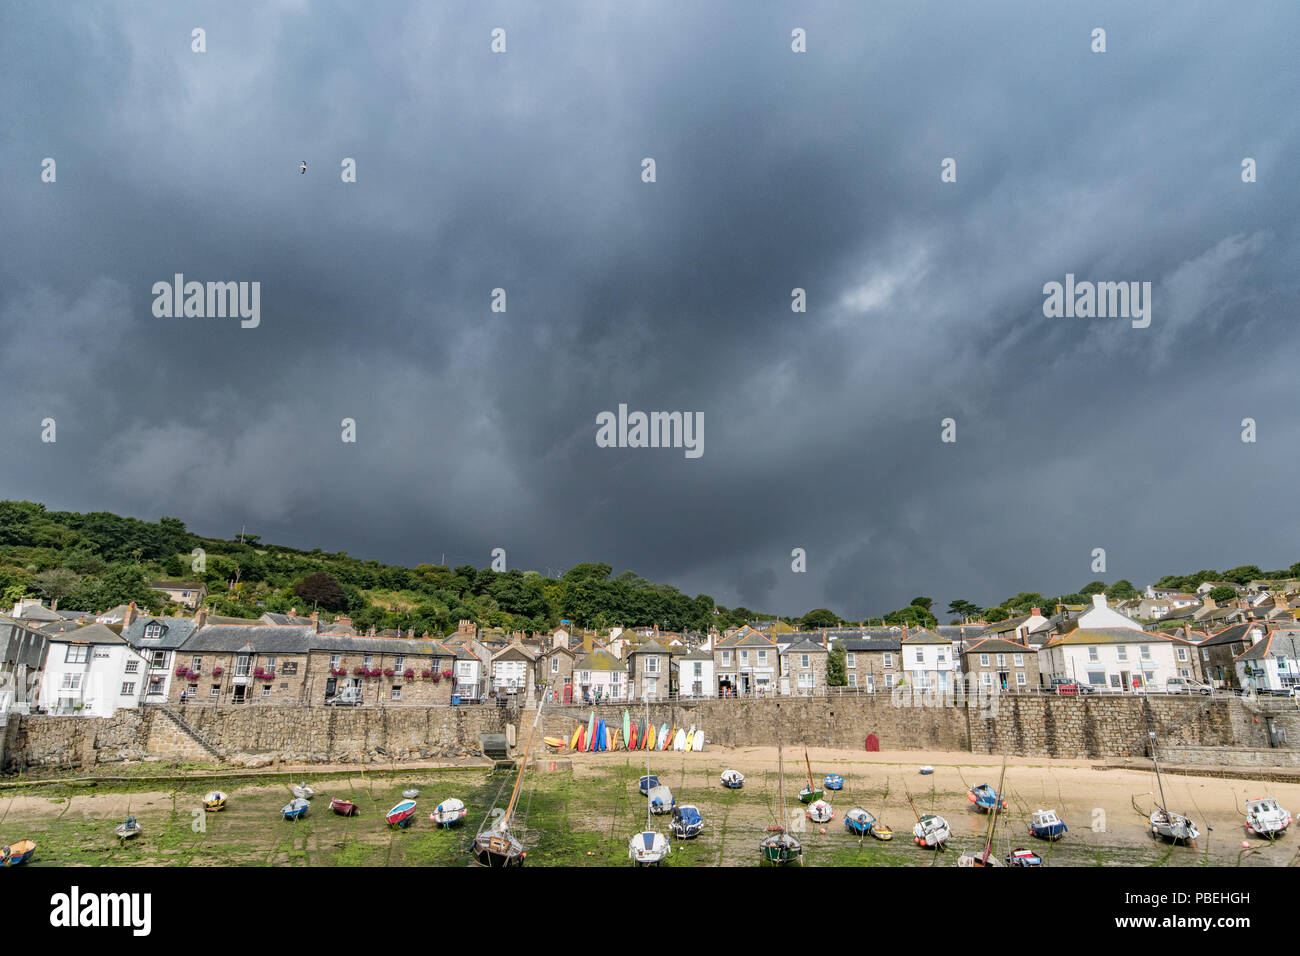 Mousehole, Cornwall, UK. 28th July 2018. UK Weather. Black skies and heavy downpours across the far south west of Cornwall today, as the heatwave breaks. Credit: Simon Maycock/Alamy Live News - Stock Image